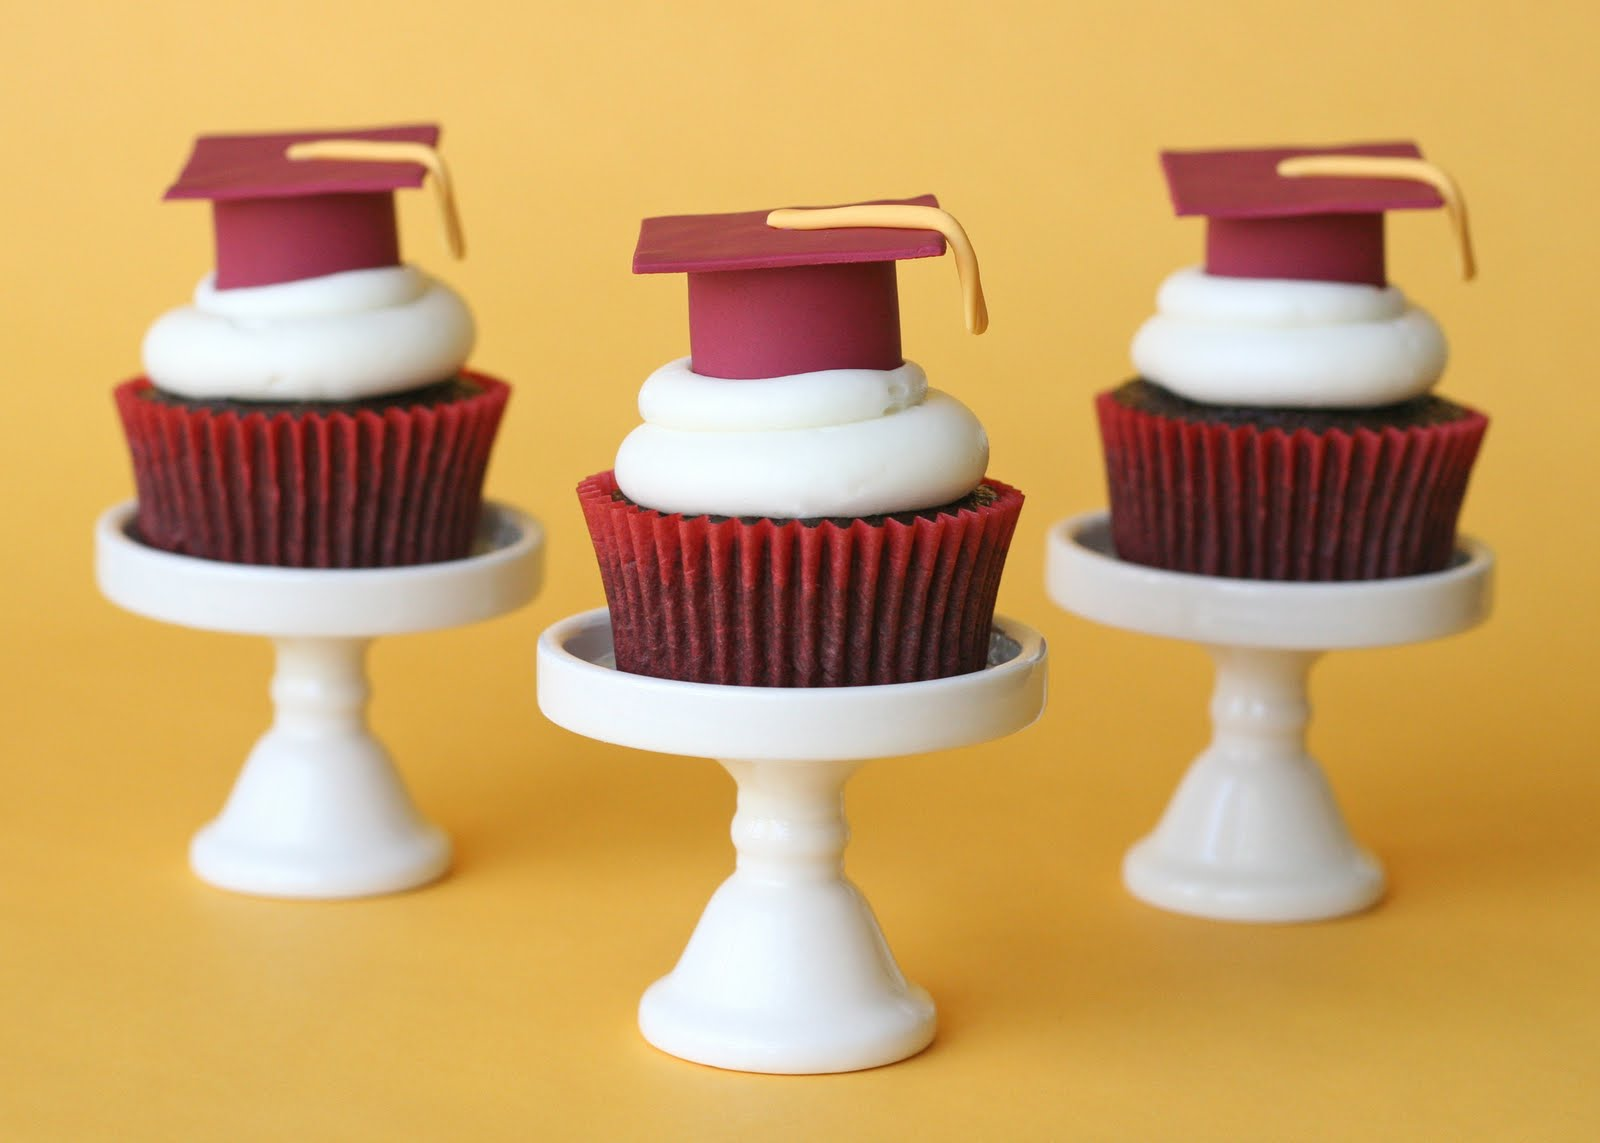 Kuche Mini Fridge Graduation Cupcakes And How To Make Fondant Graduation